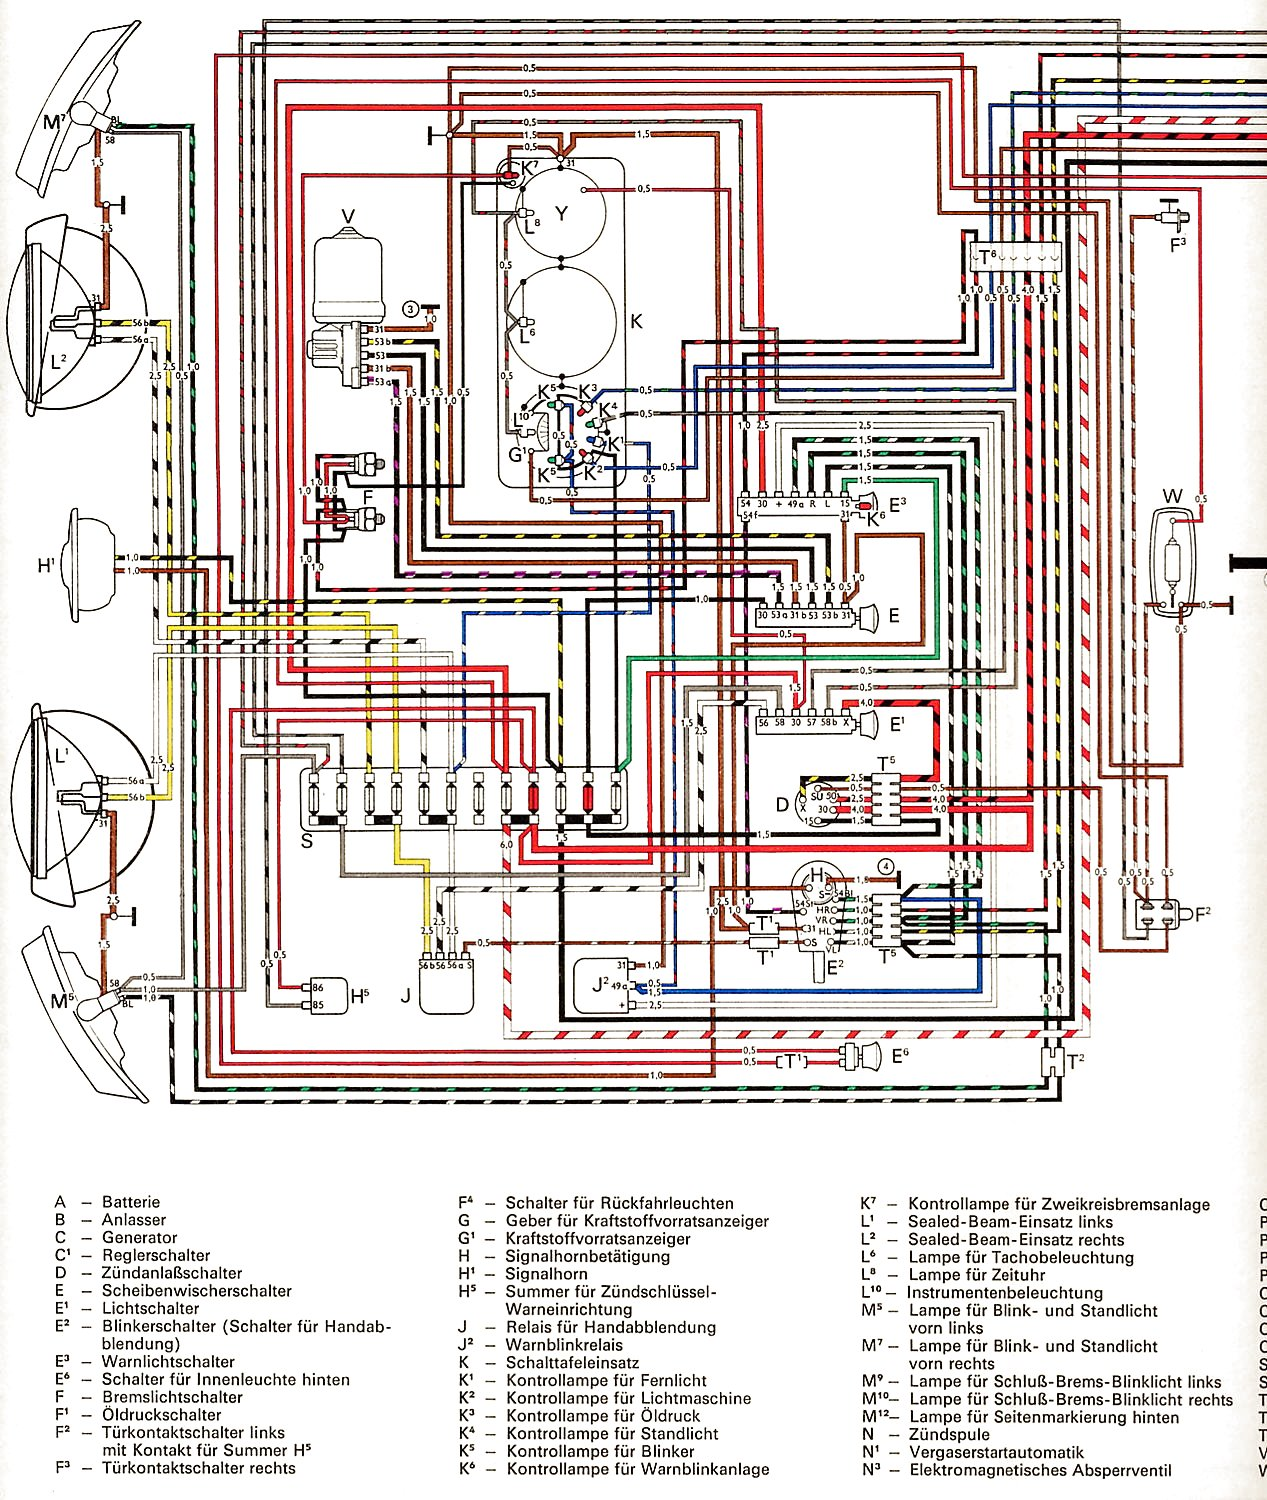 Vw Bug Wiring Diagram Schemes 73 Beetle Free Picture Schematic Vintagebus Com Bus And Other Diagrams Flasher Relay